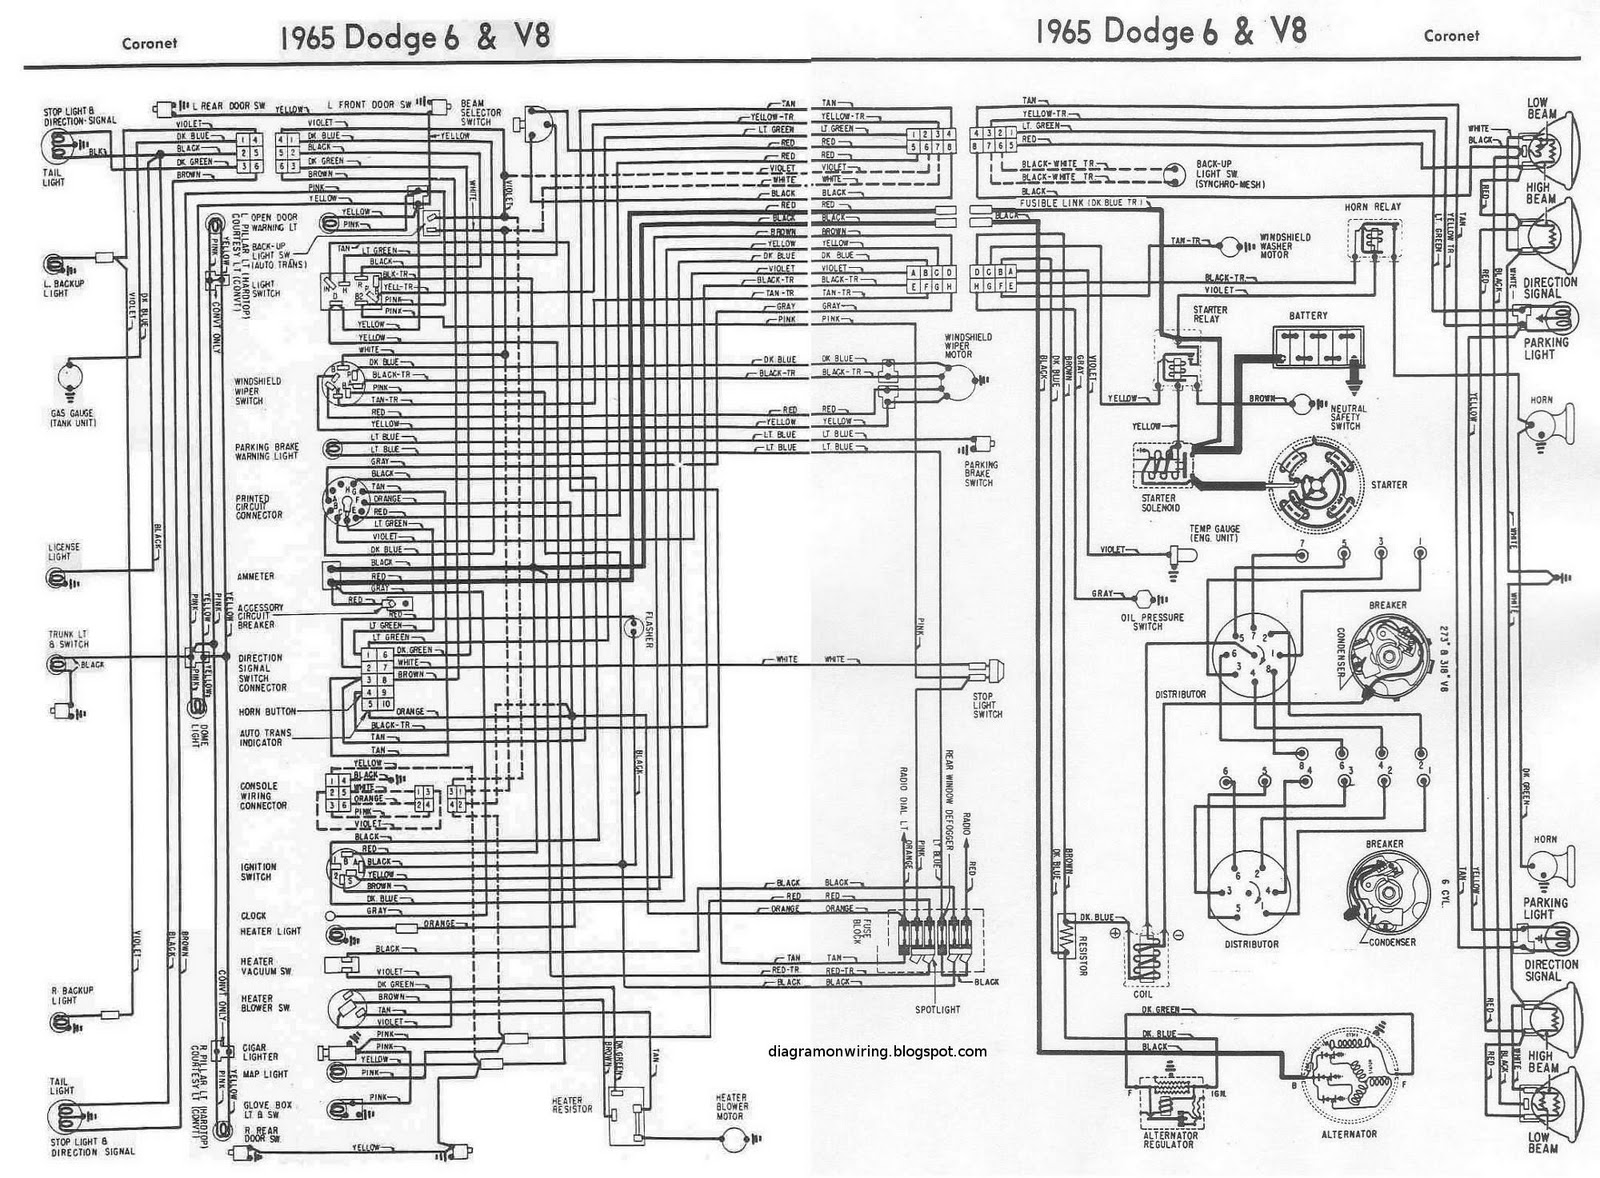 1965+Dodge+6+and+V8+Coronet+Complete+Electrical+Wiring+Diagram dodge 6 and v8 coronet 1965 complete wiring diagram all about 1967 dodge charger wiring diagram at gsmx.co